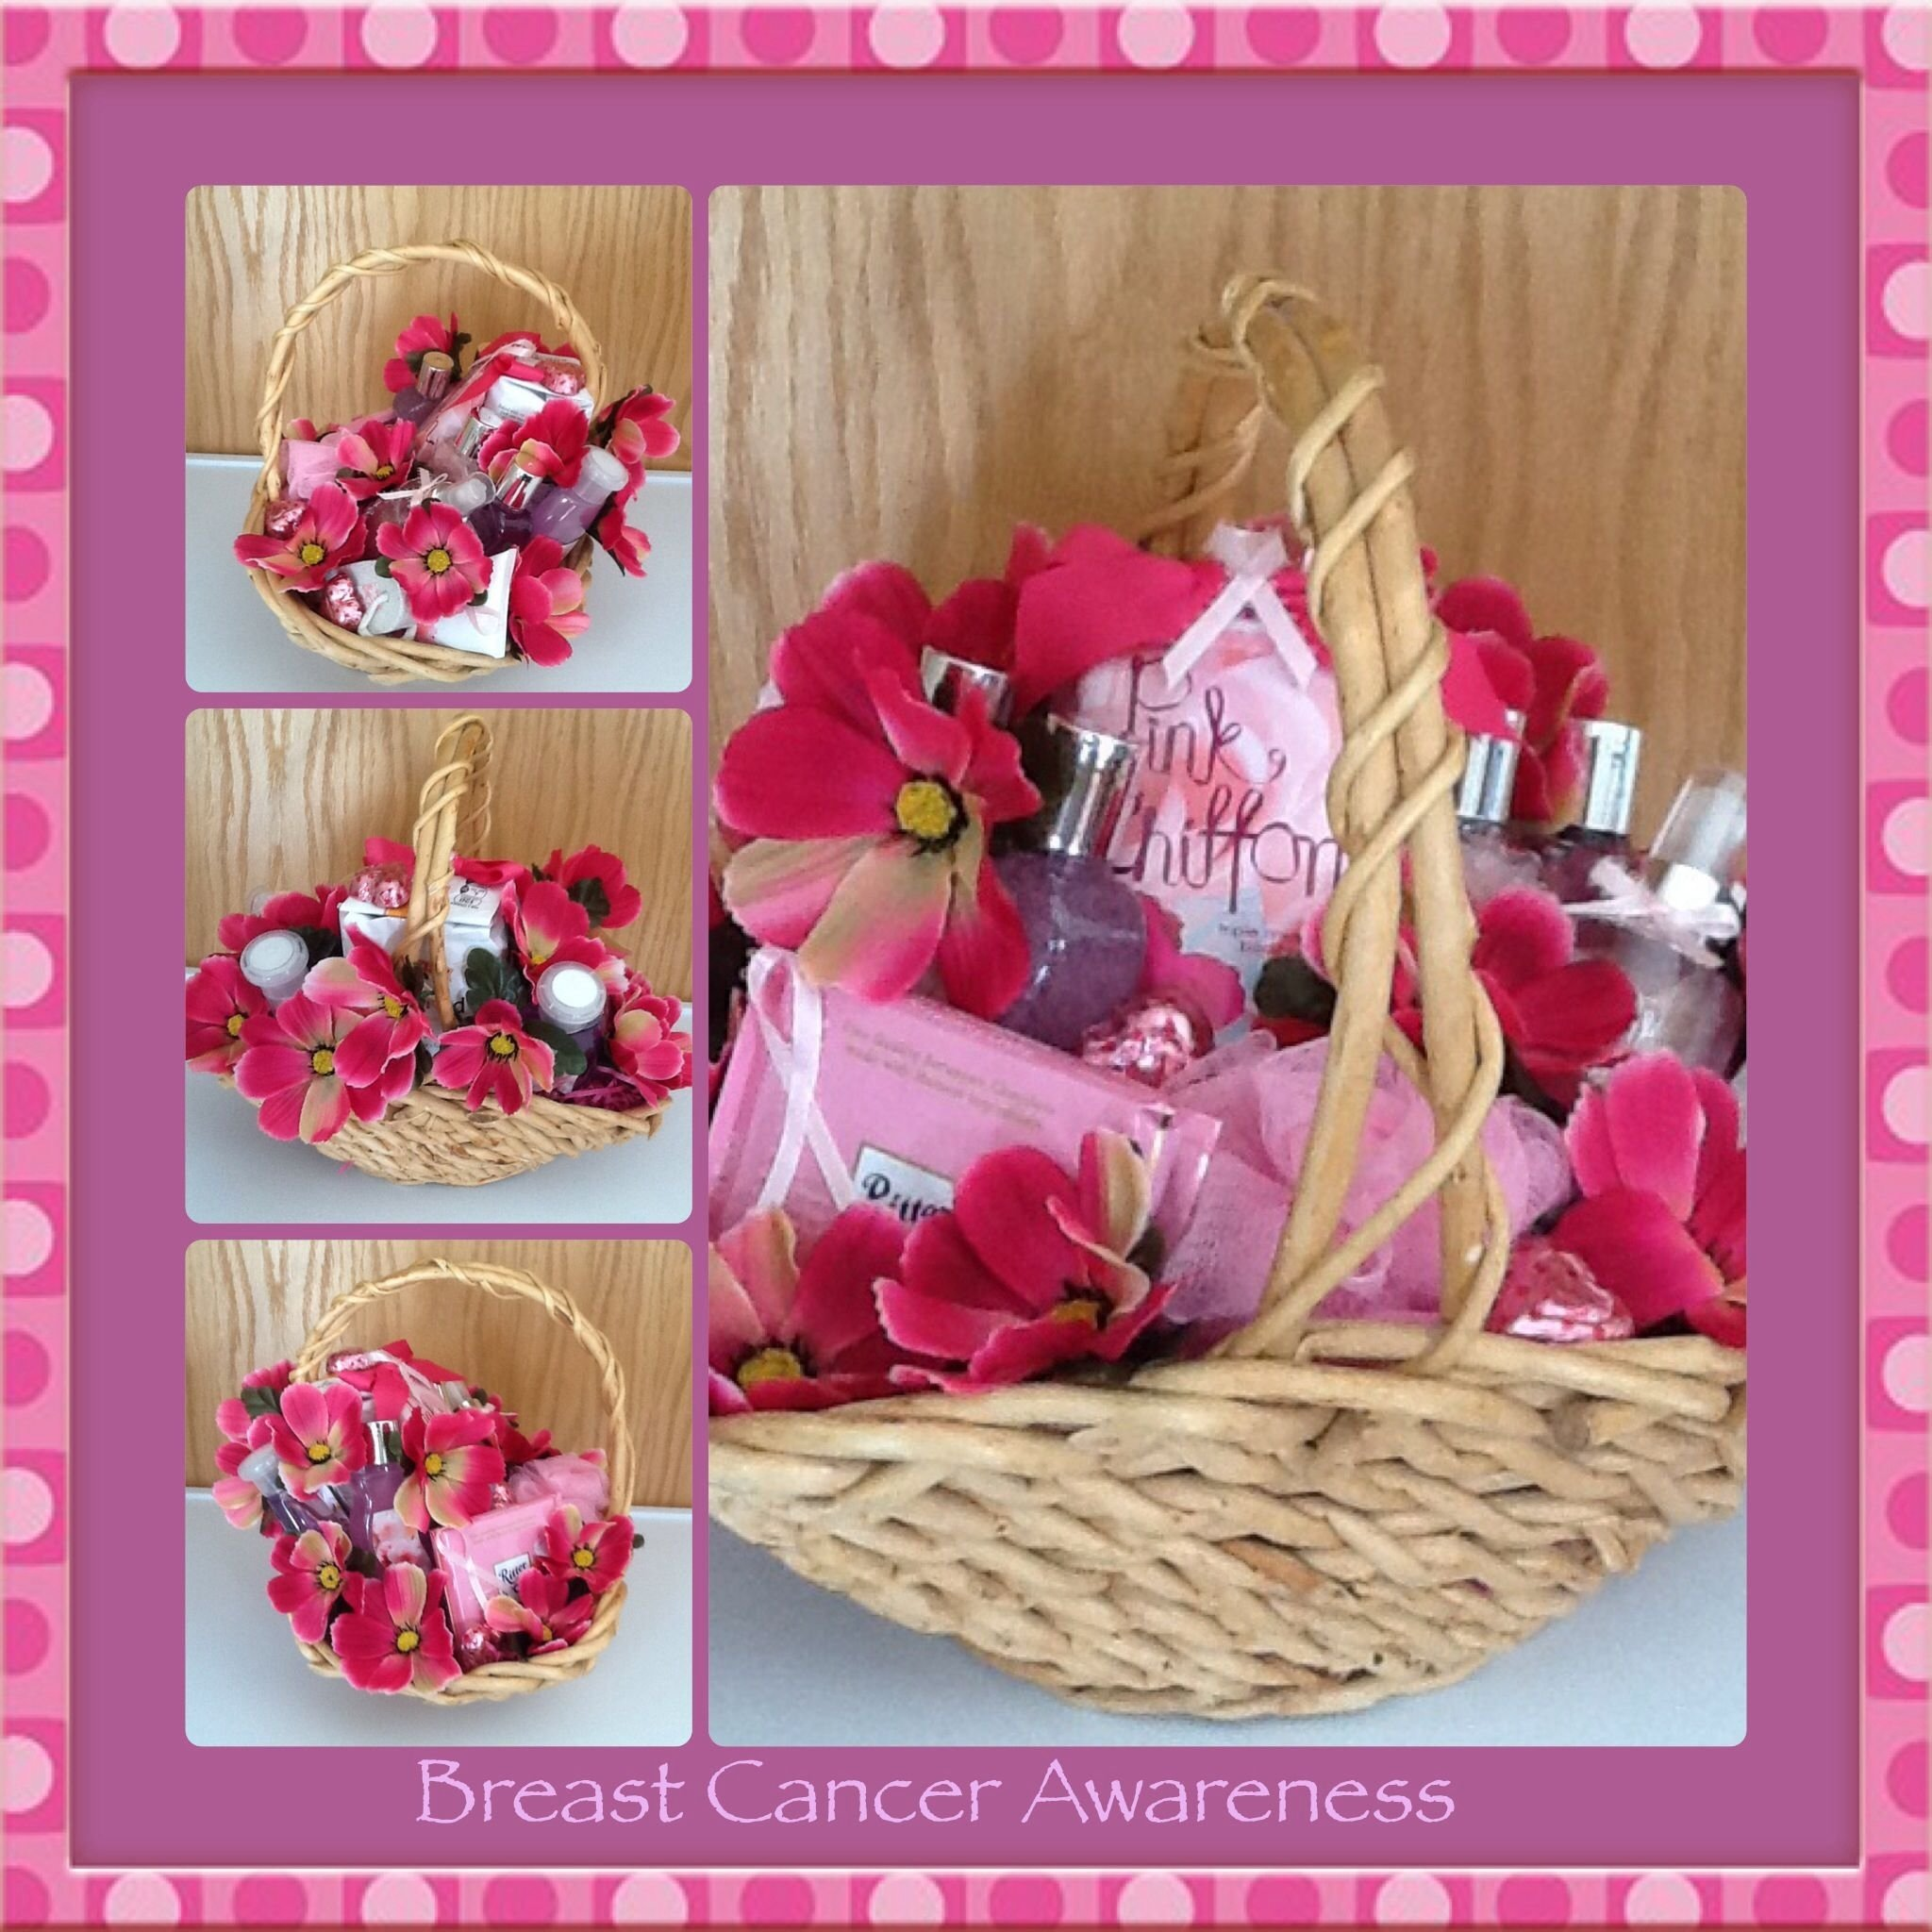 10 Famous Gift Ideas For Breast Cancer Patients breast cancer awareness gift basketgifted occakesions n baskets 2020